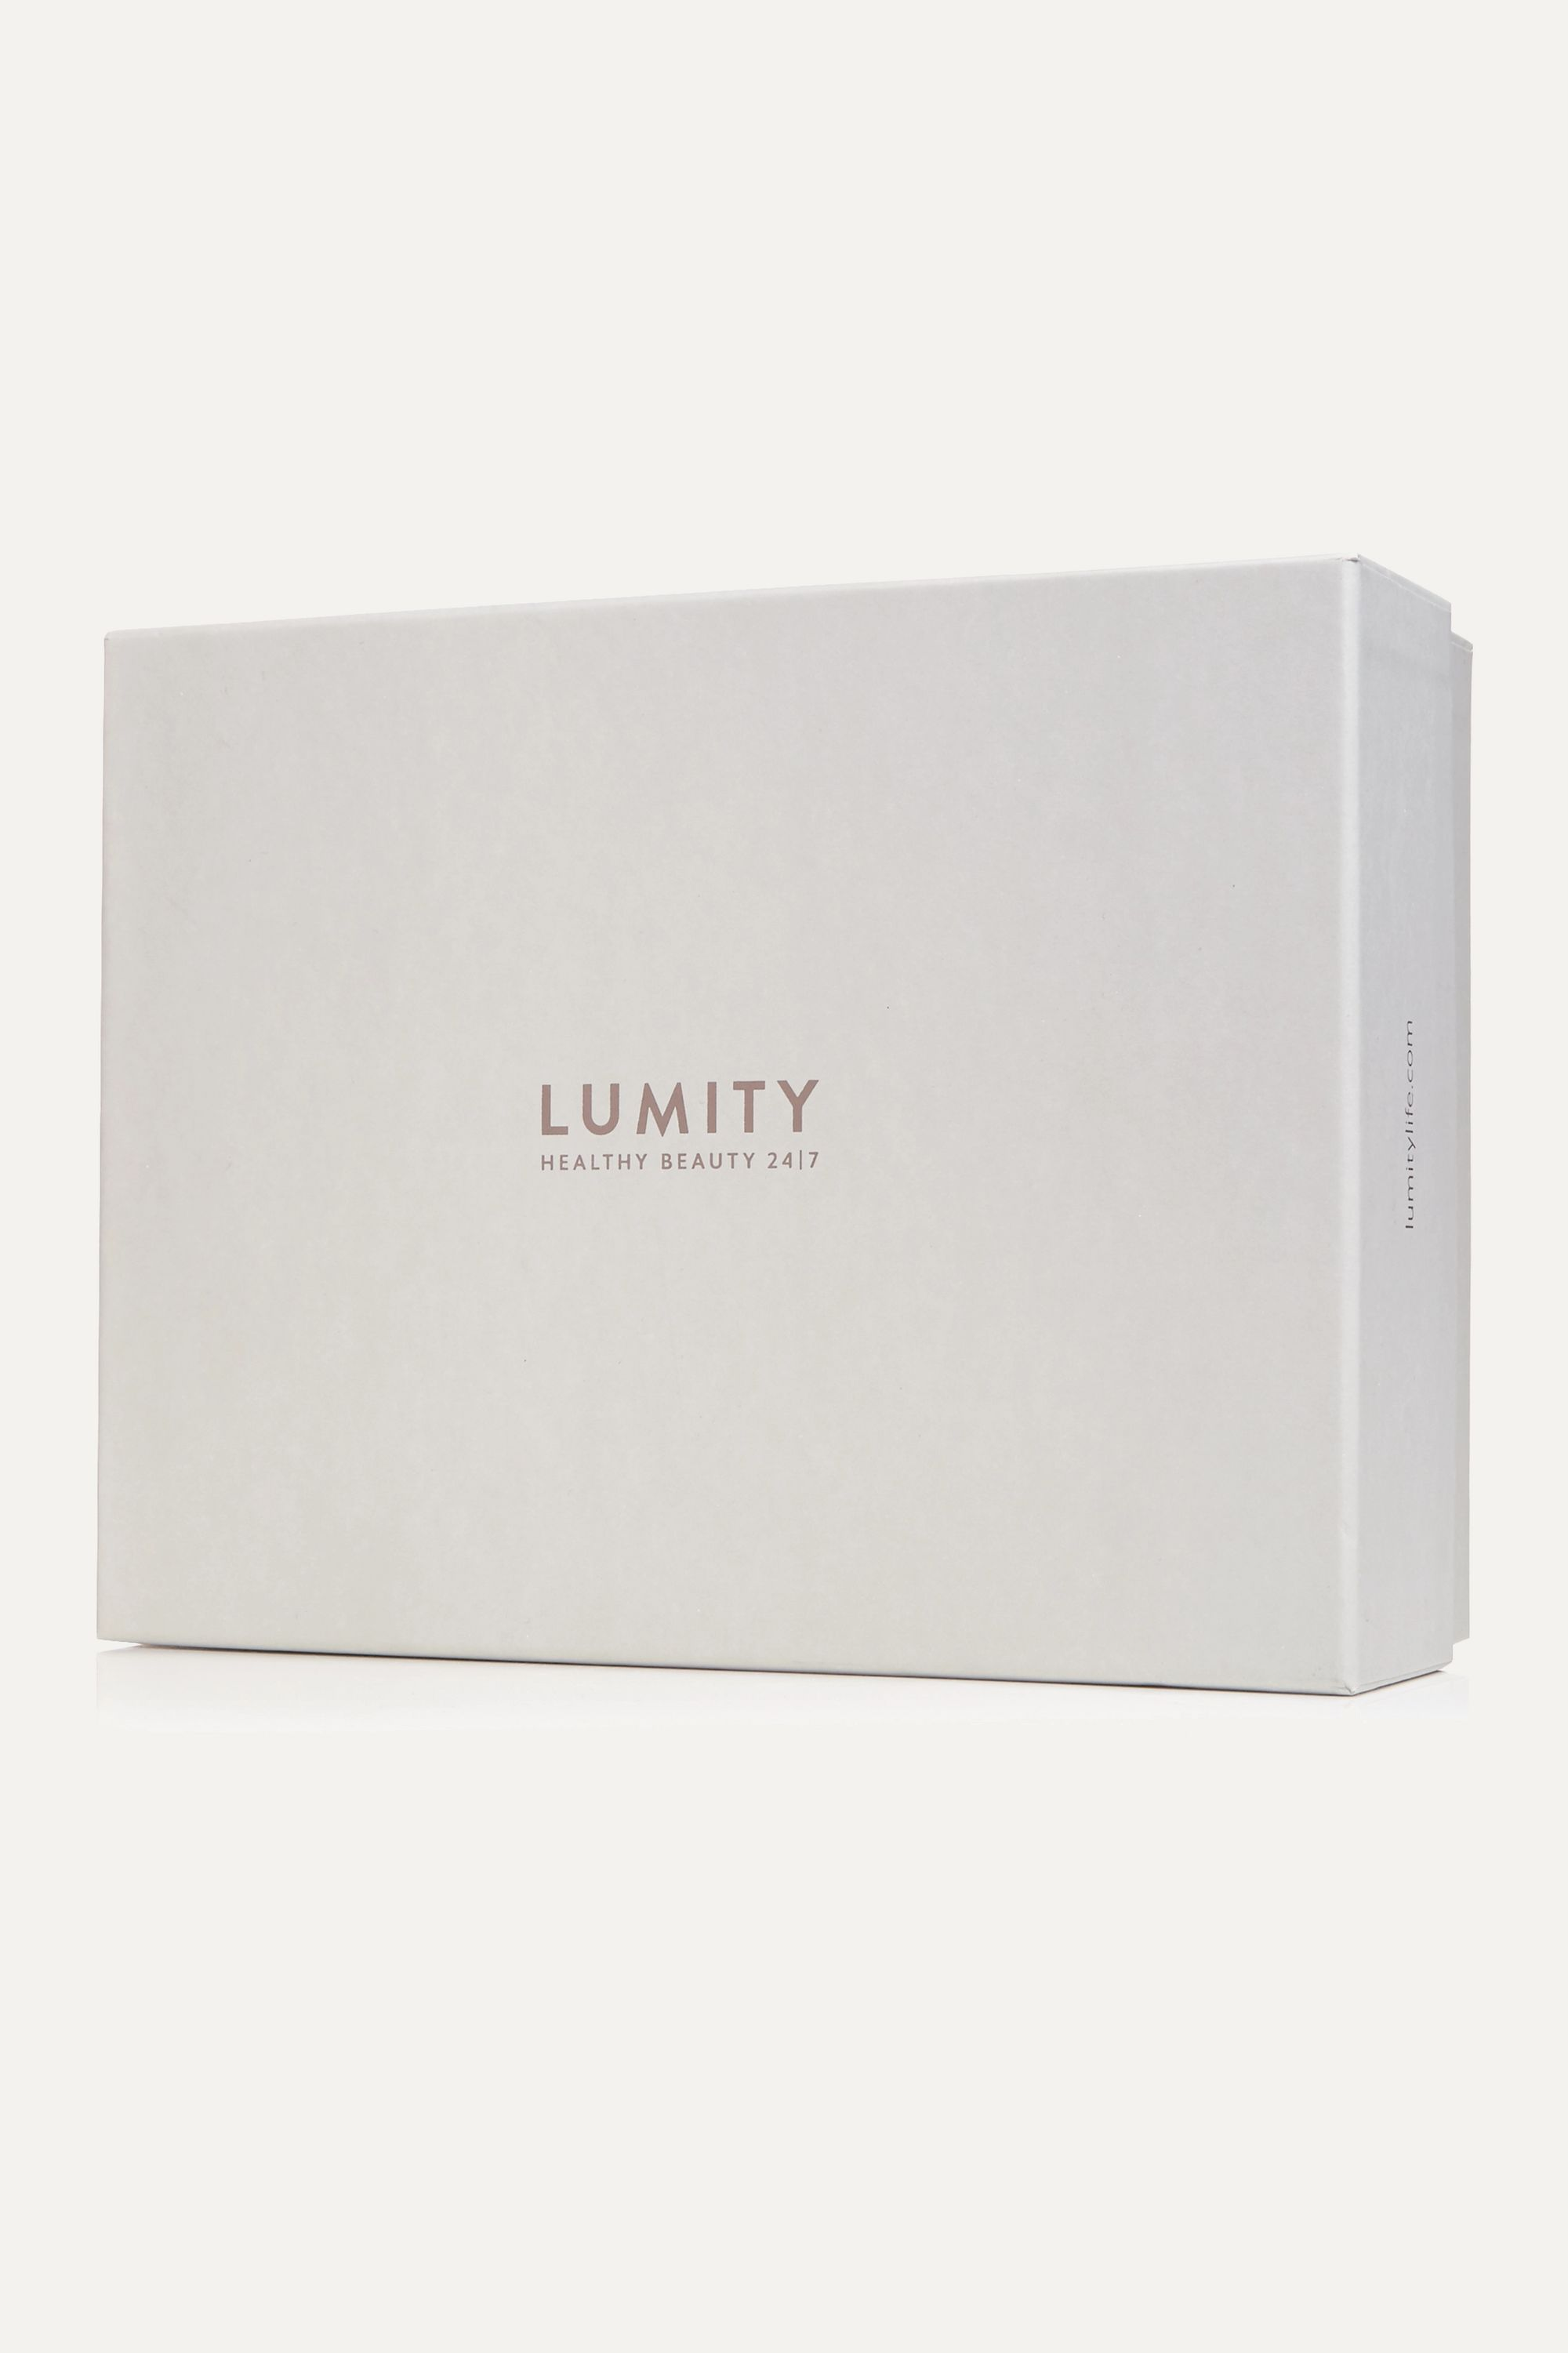 Lumity Morning and Night Supplements, One Month Starter Kit